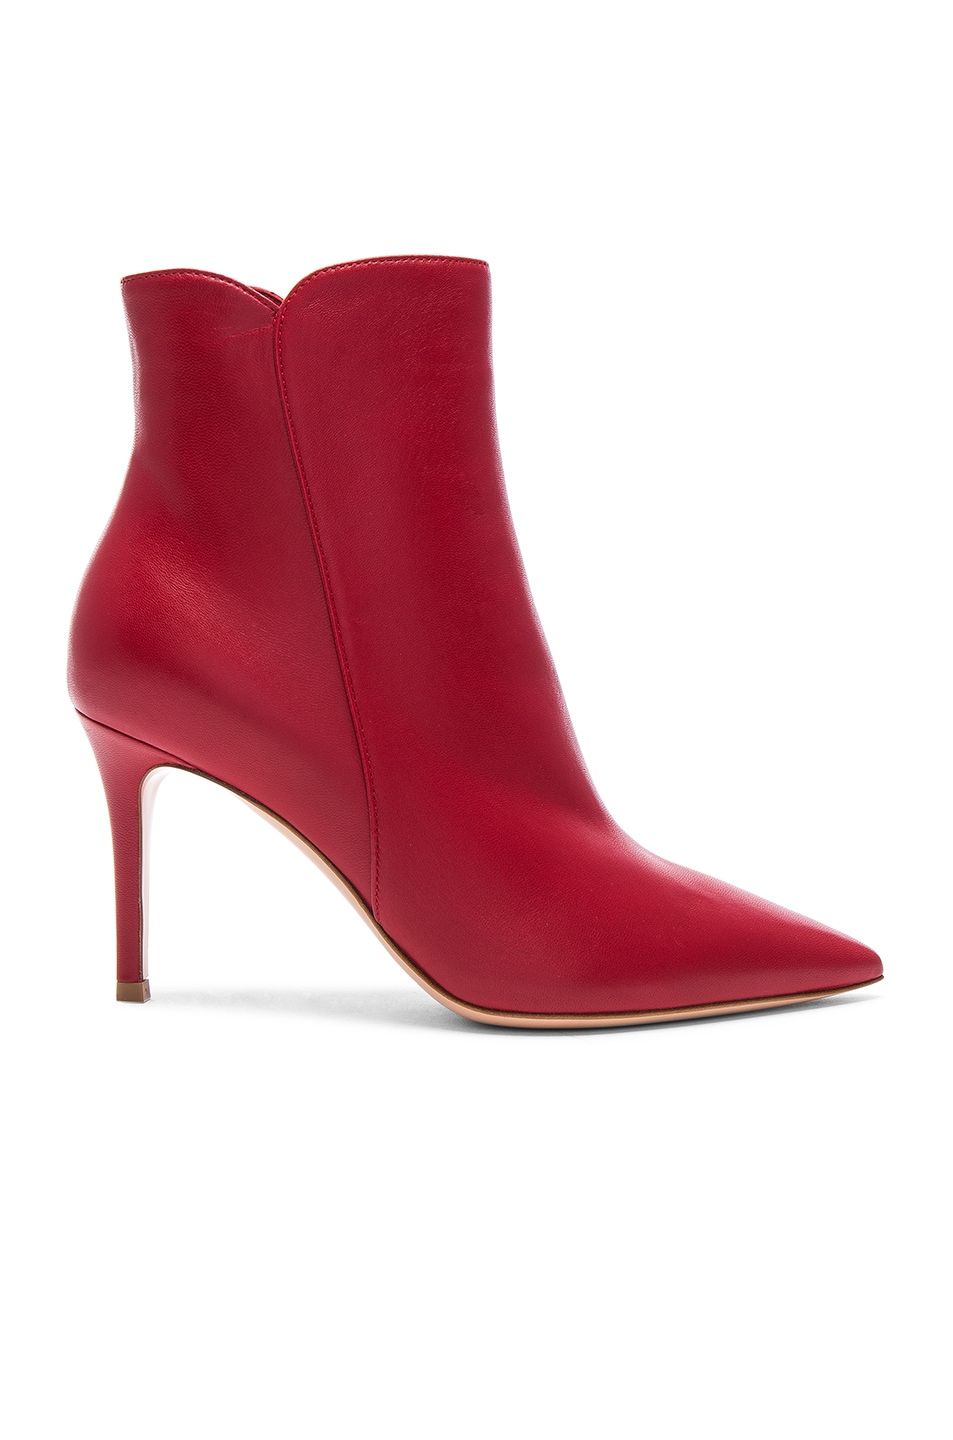 Image 1 of Gianvito Rossi Nappa Leather Levy Ankle Boots in Tabasco Red